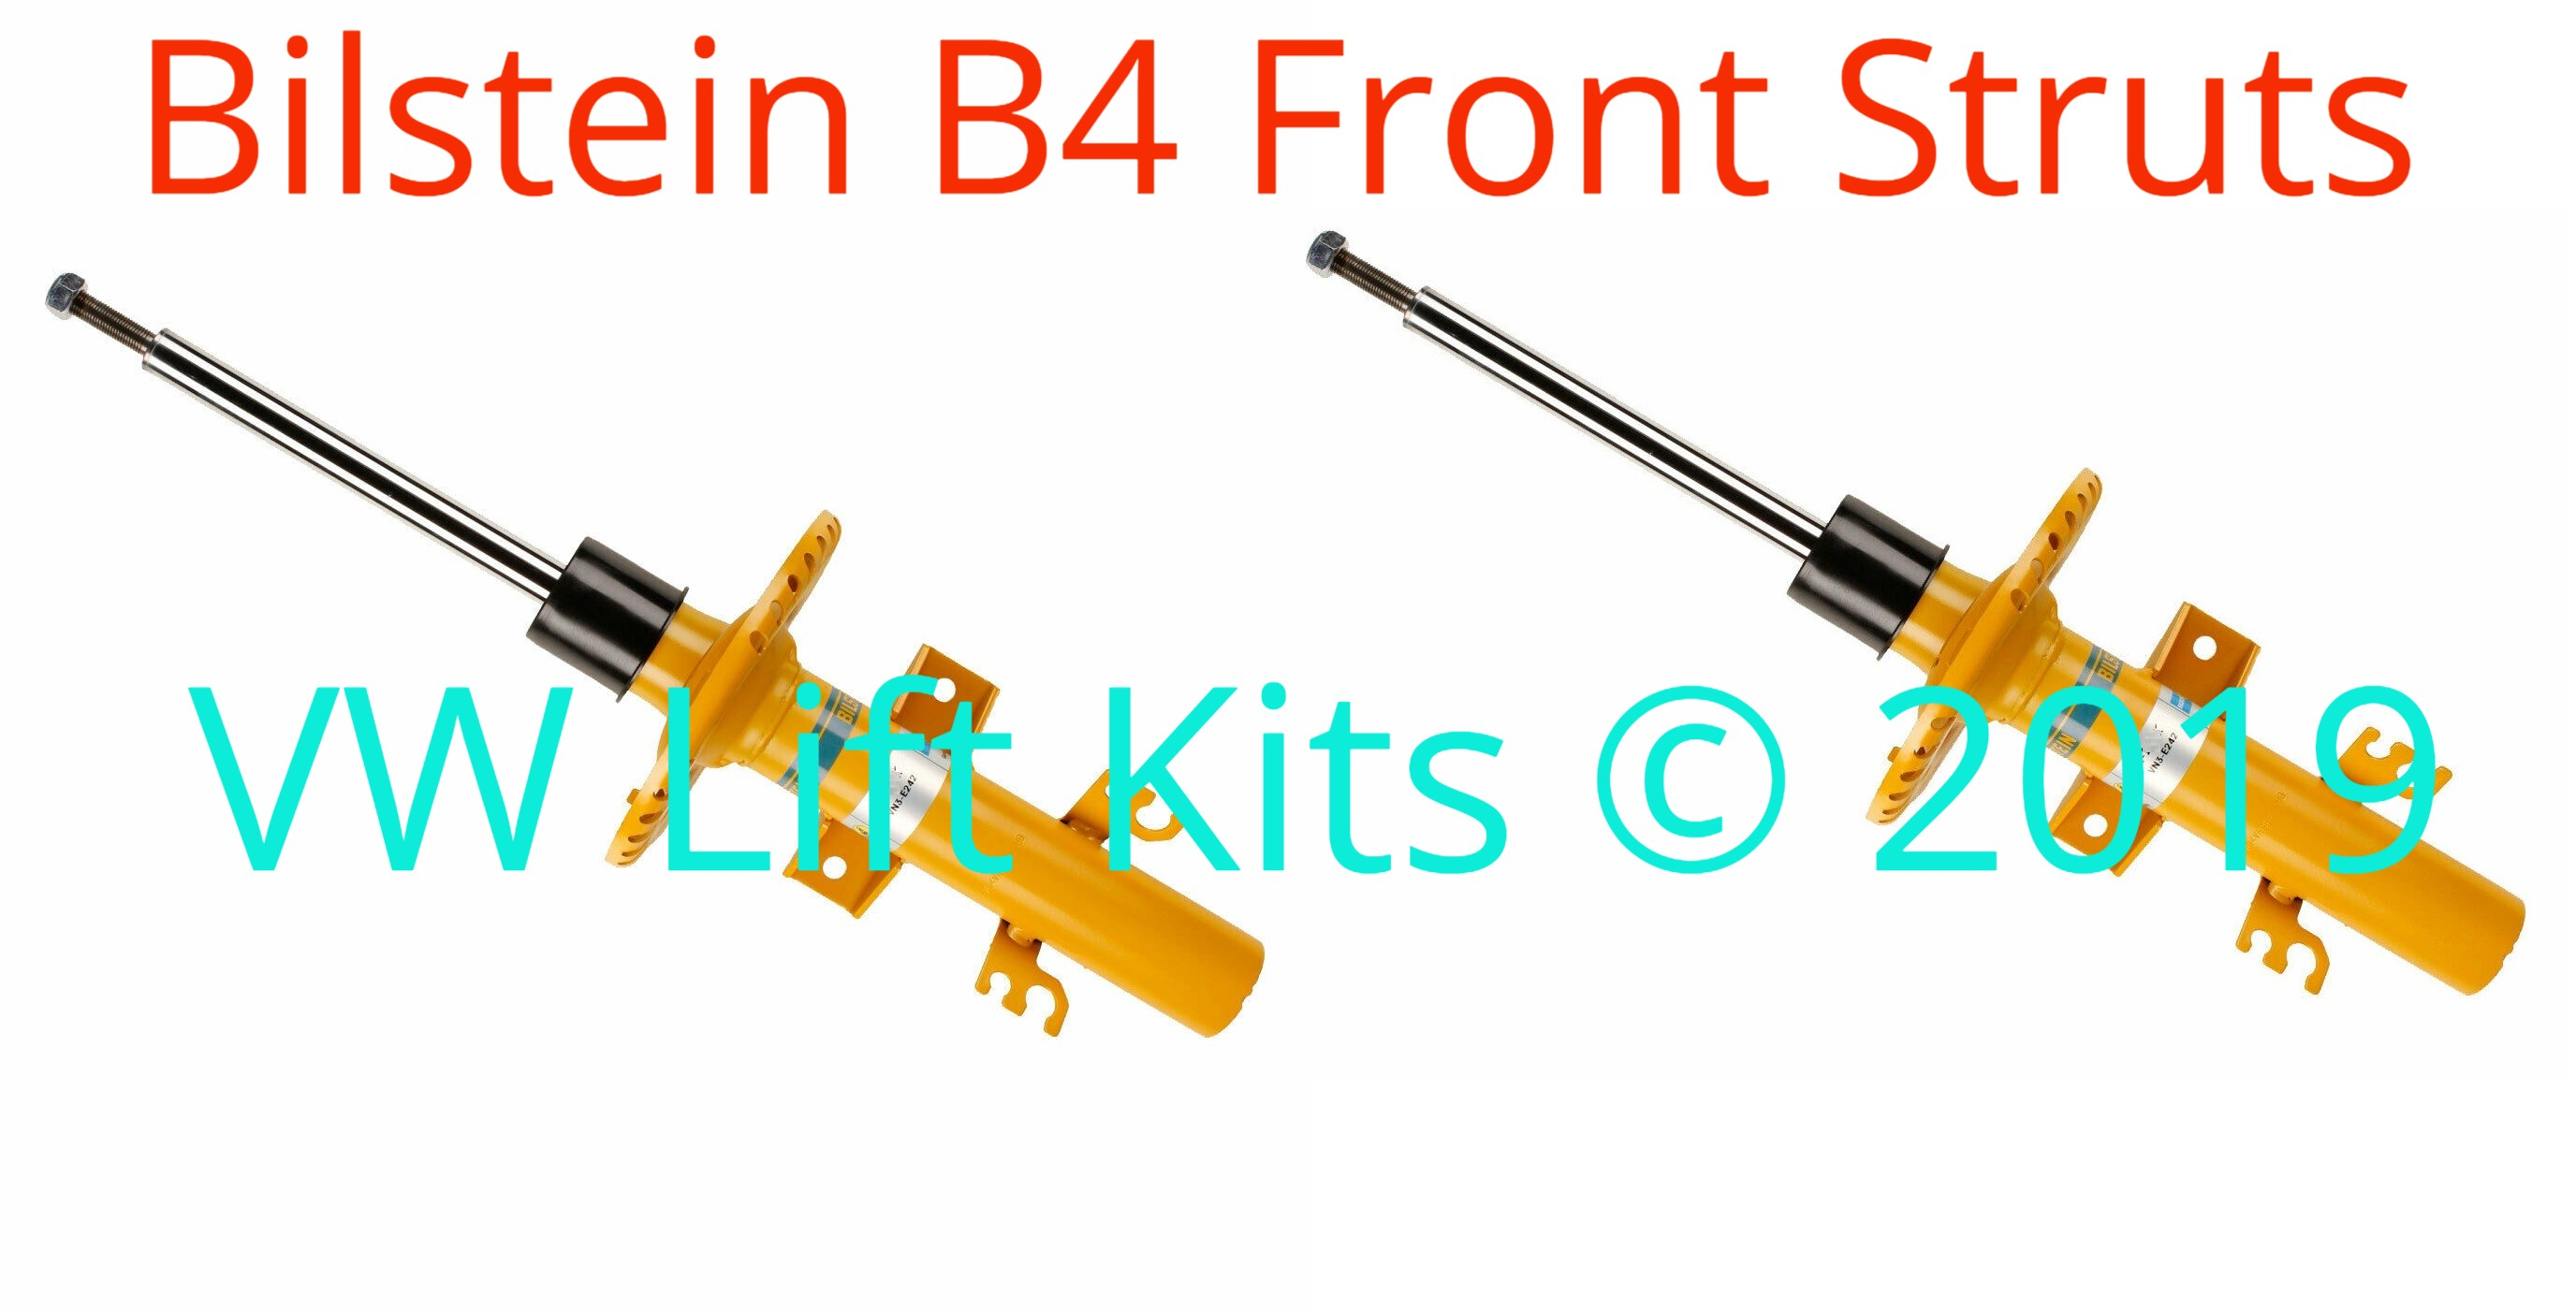 These twin tube Bilstein B4 front struts provide a firmer ride and are longer to work with the additional lift.